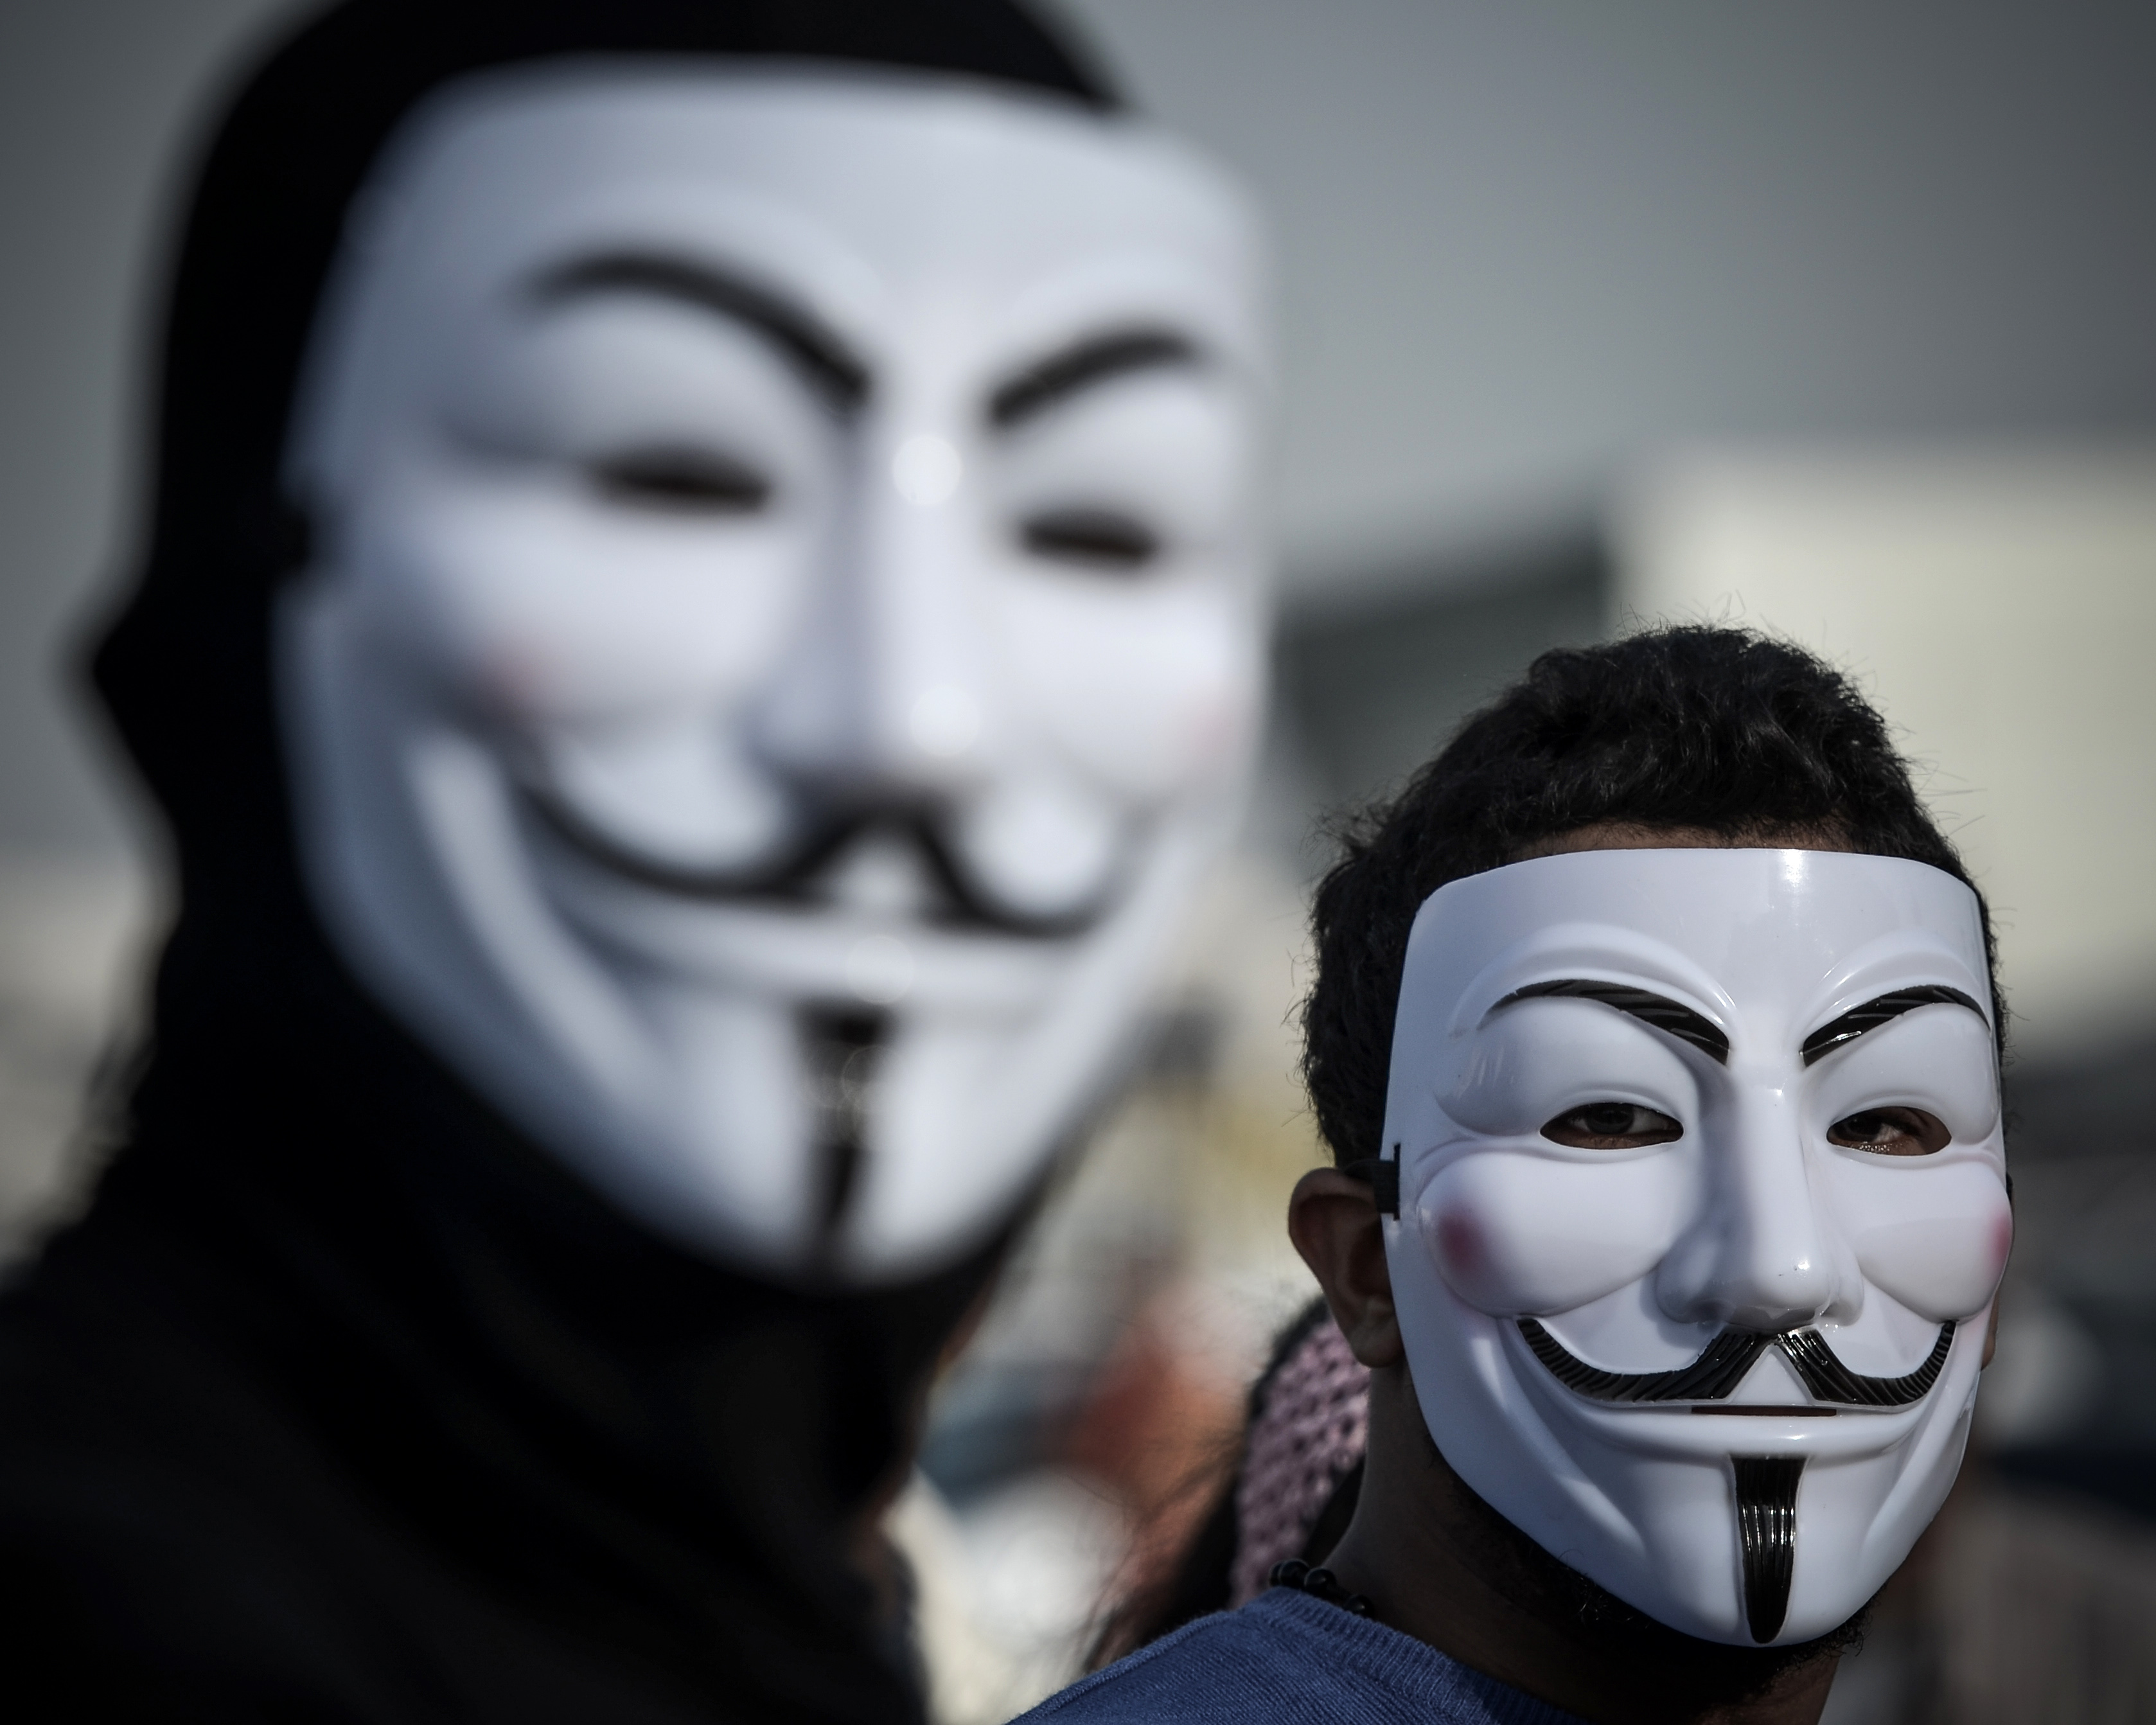 anonymous full movie in hindi